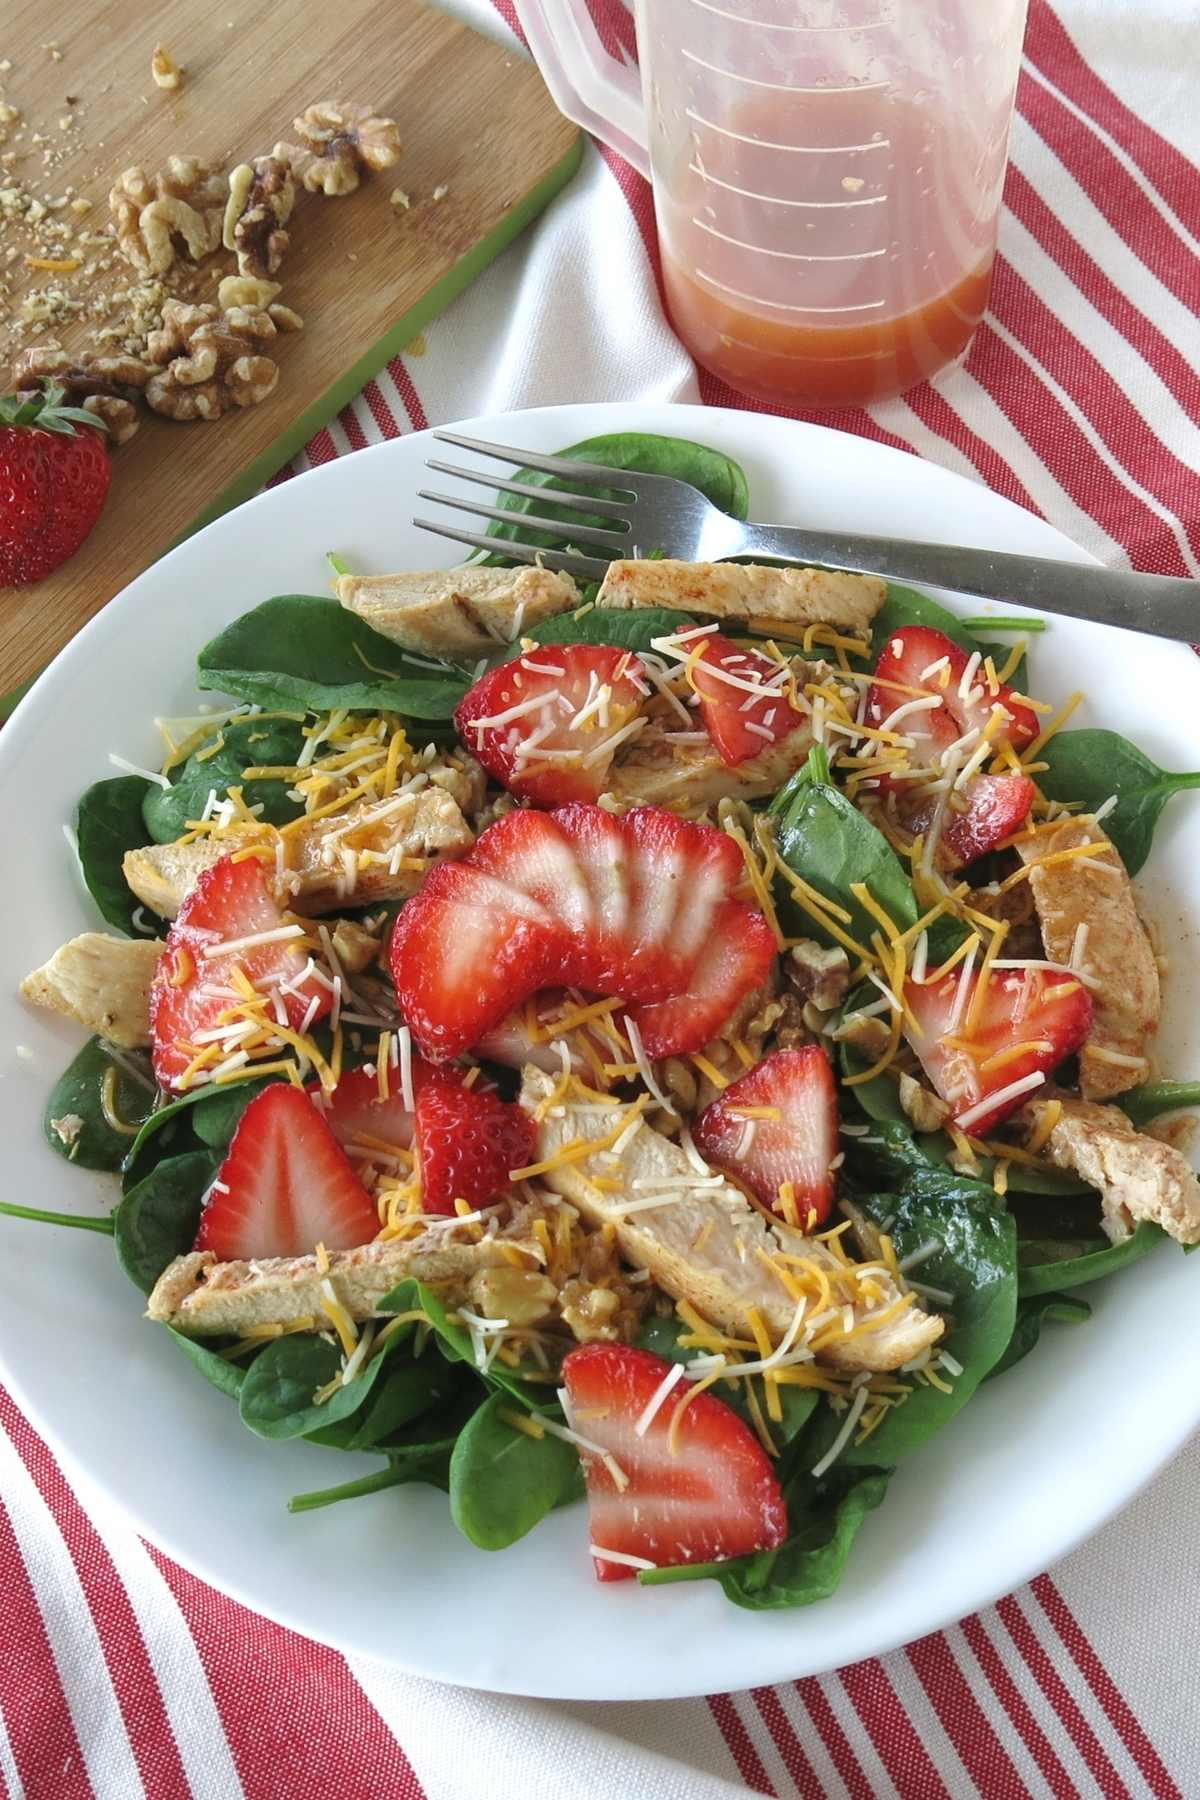 Assembled Strawberry Salad on plate with dressing, walnuts and strawberries in the background.